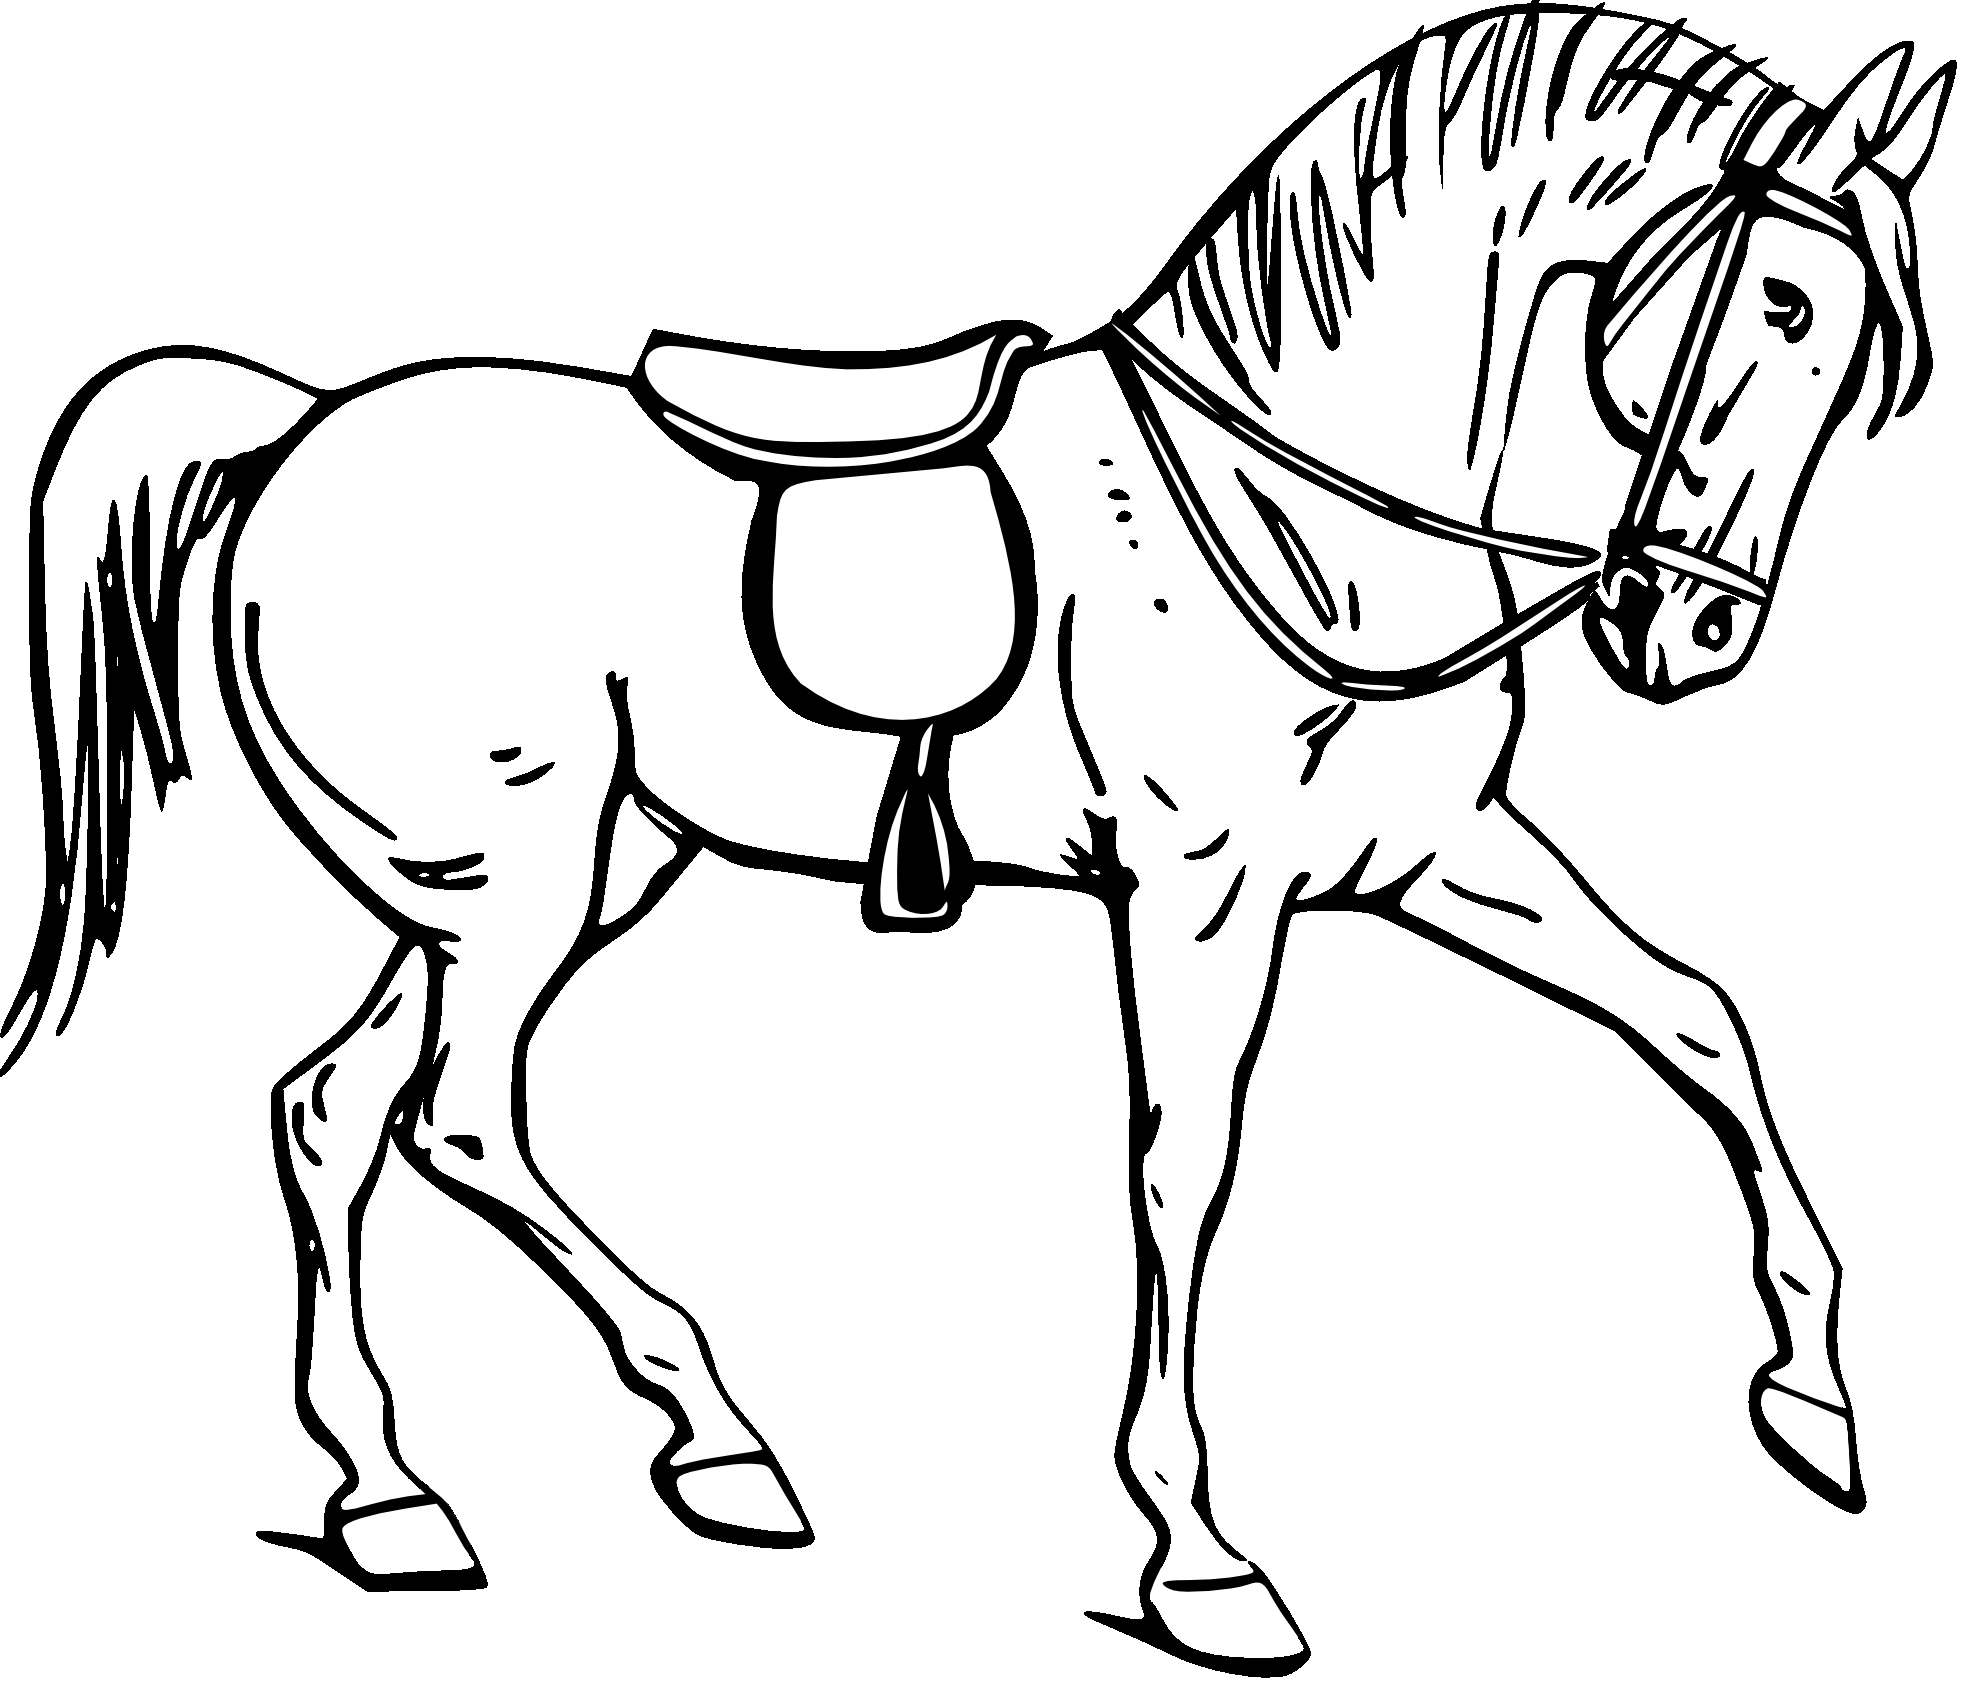 1969x1684 Horse Outline Coloring Page Horses Coloring Pages Free Coloring